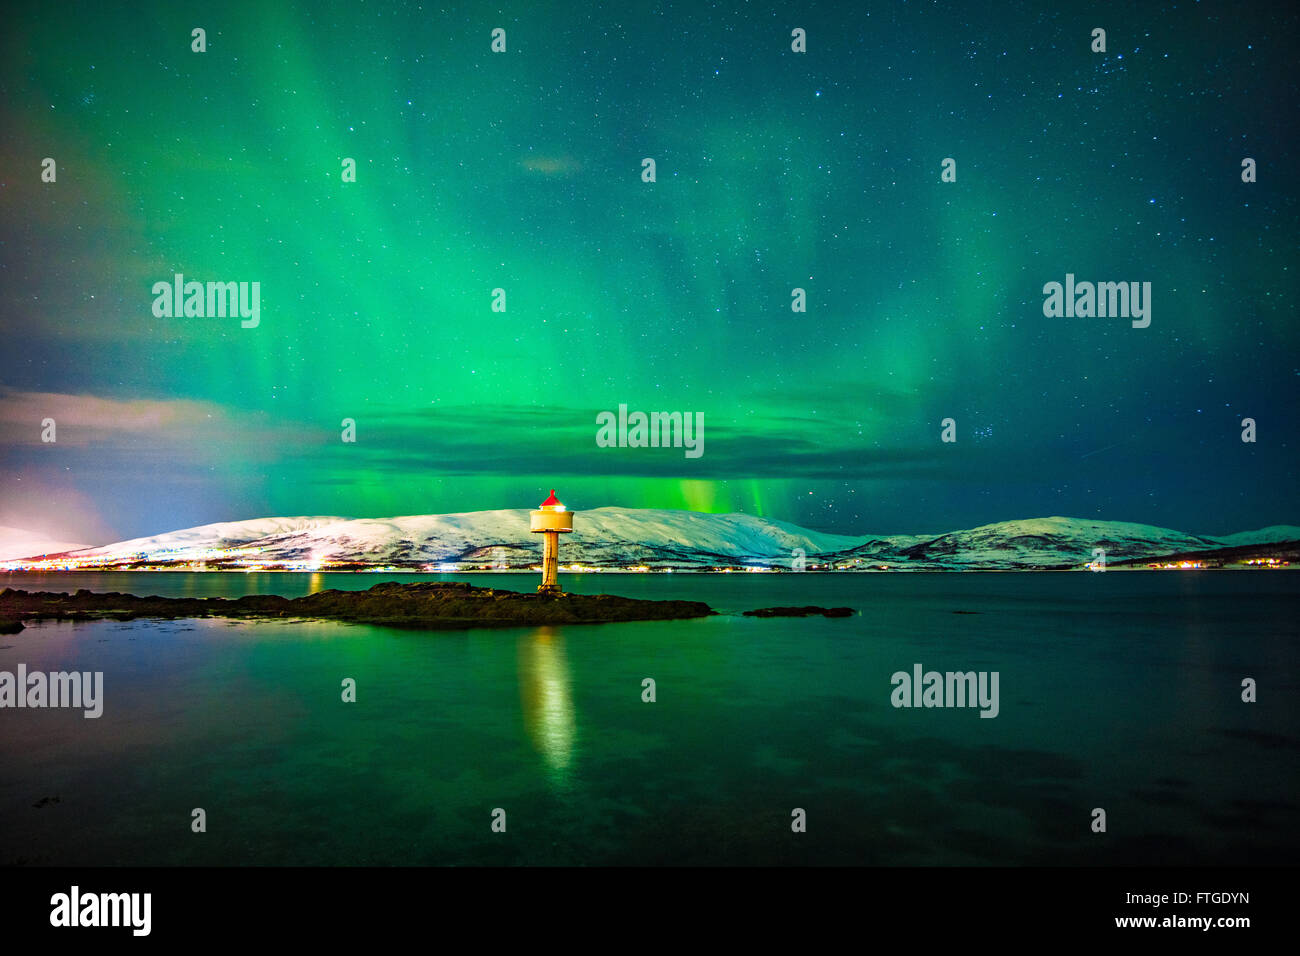 Aurora Borealis dancing over fjord, Tromso Northern Norway - Stock Image